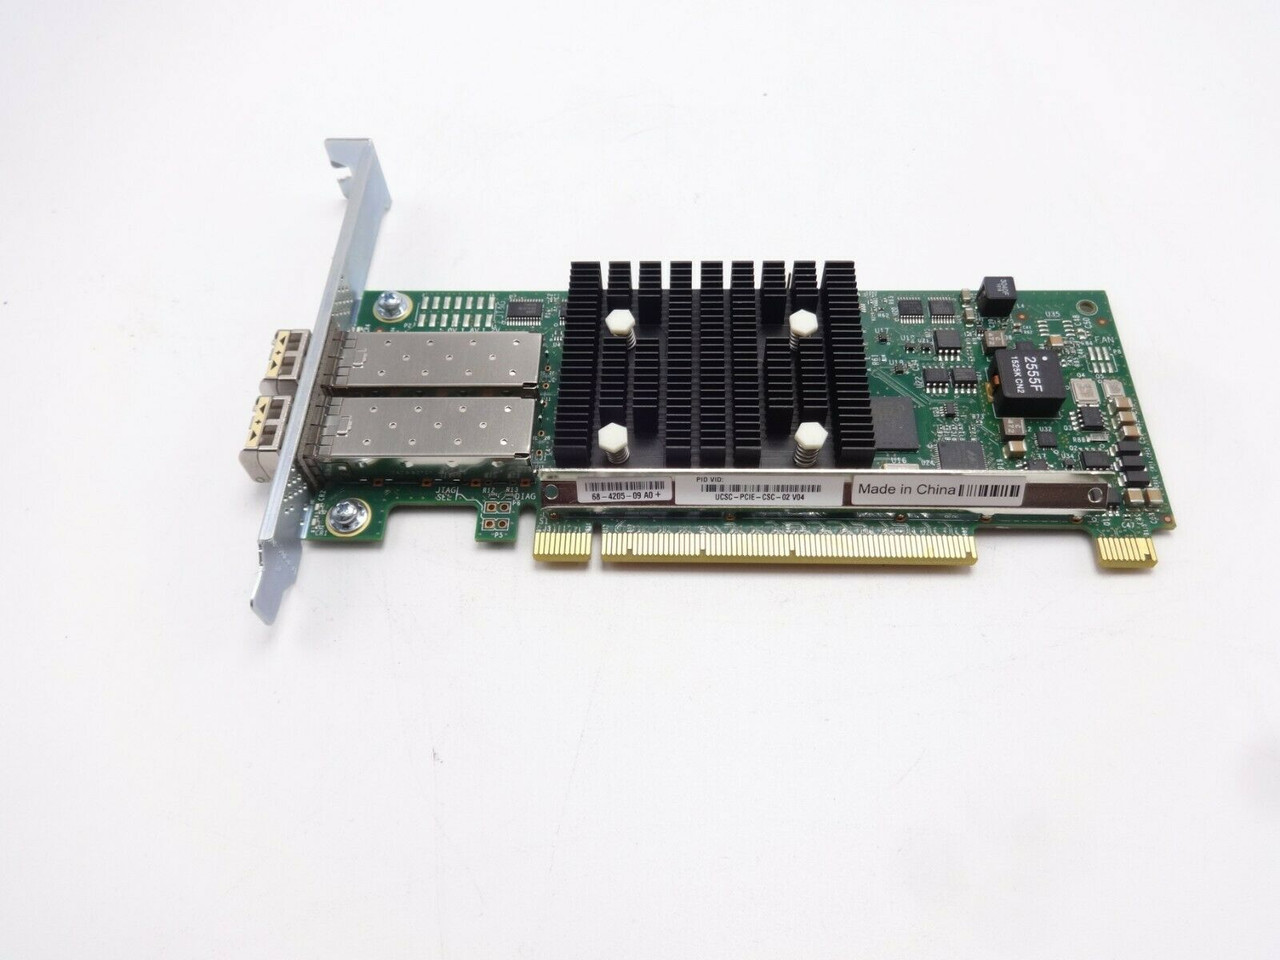 Cisco UCSC-PCIE-CSC-02 10GB Dual Port PCIe Network Adapter Card